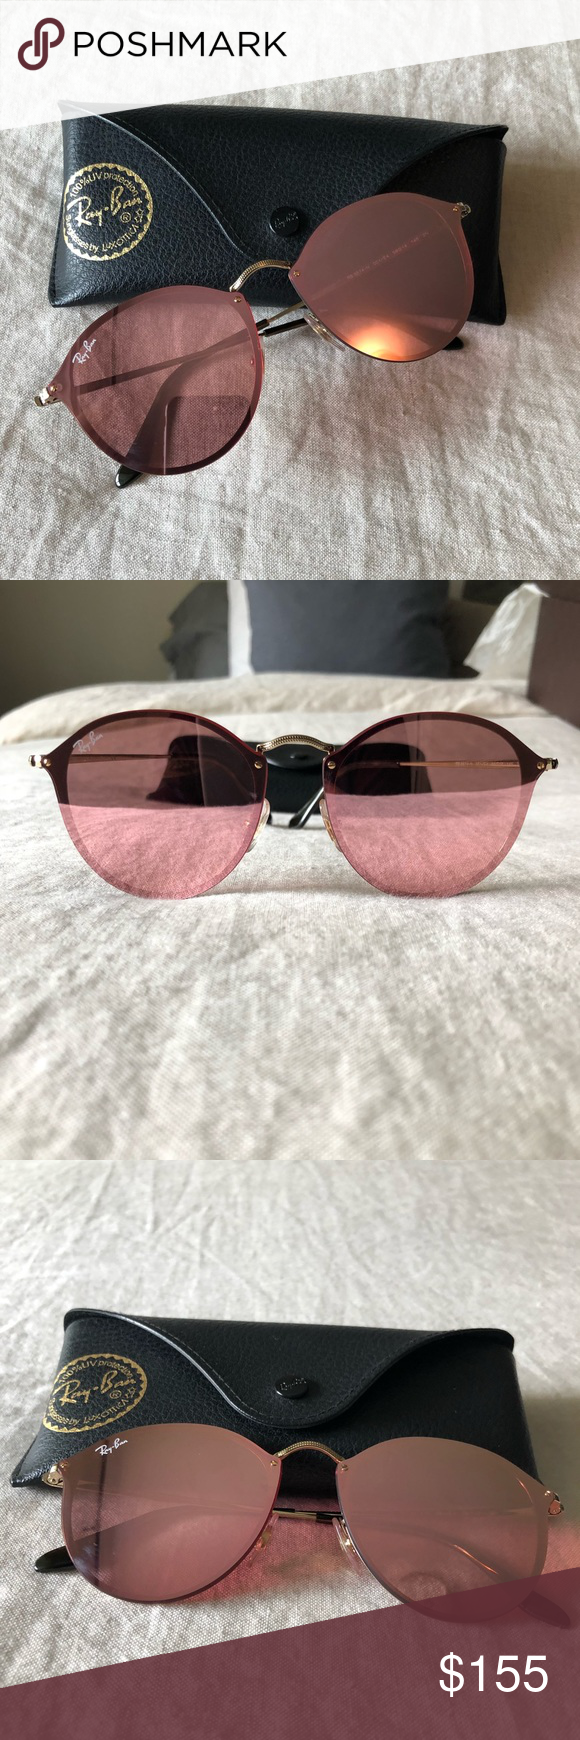 2fd9a22ac1 Ray-Ban Blaze Round Pink Mirror Sunglasses Flat-mirror-over-frame with